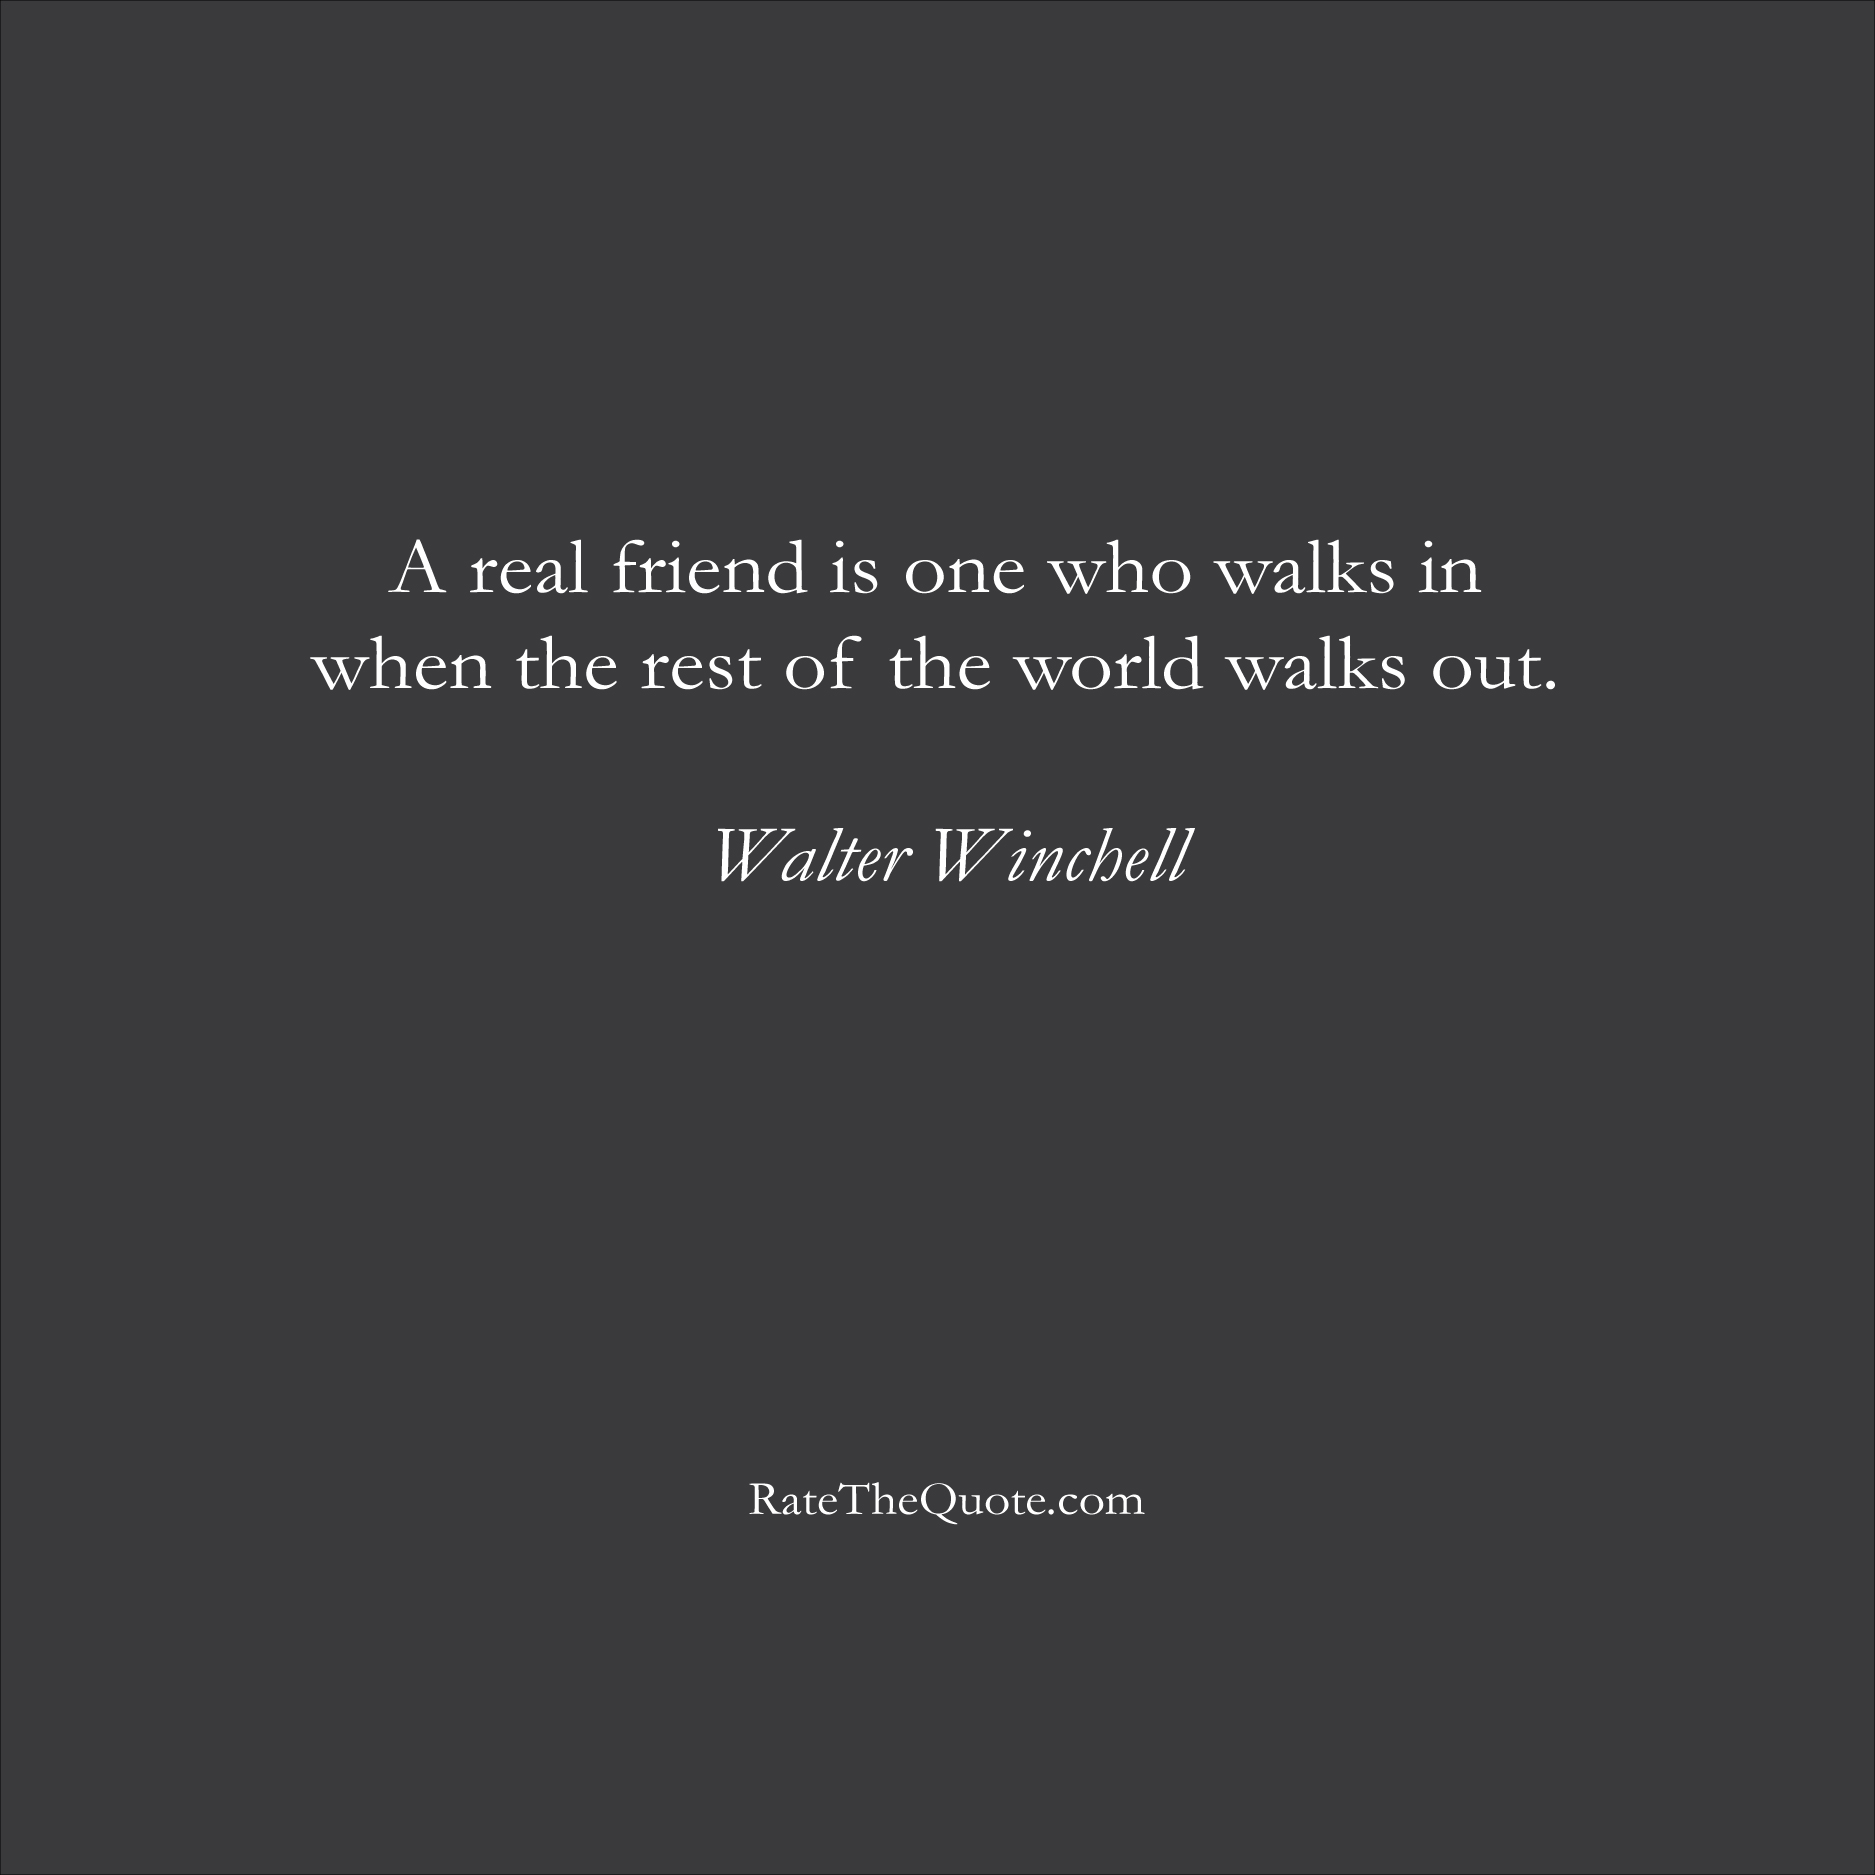 Friendship Quotes A real friend is one who walks in when the rest of the world walks out. Walter Winchell